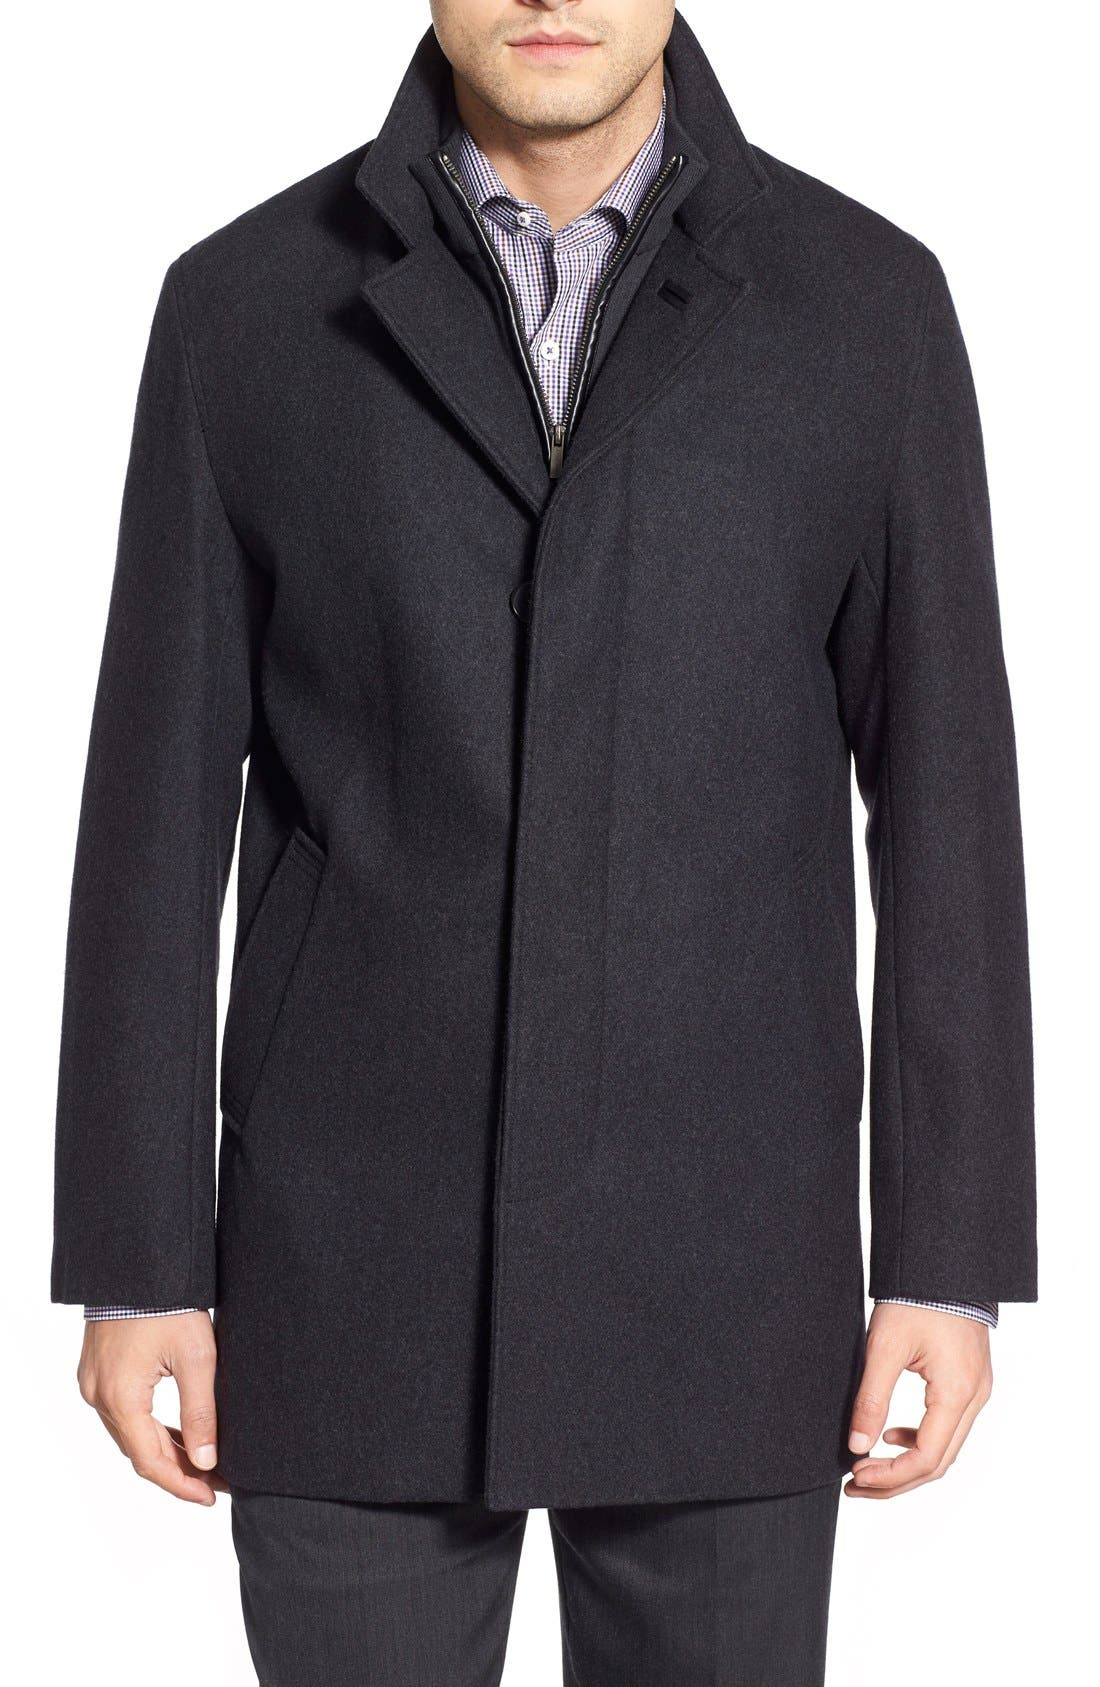 Wool Blend Topcoat with Inset Knit Bib,                             Main thumbnail 2, color,